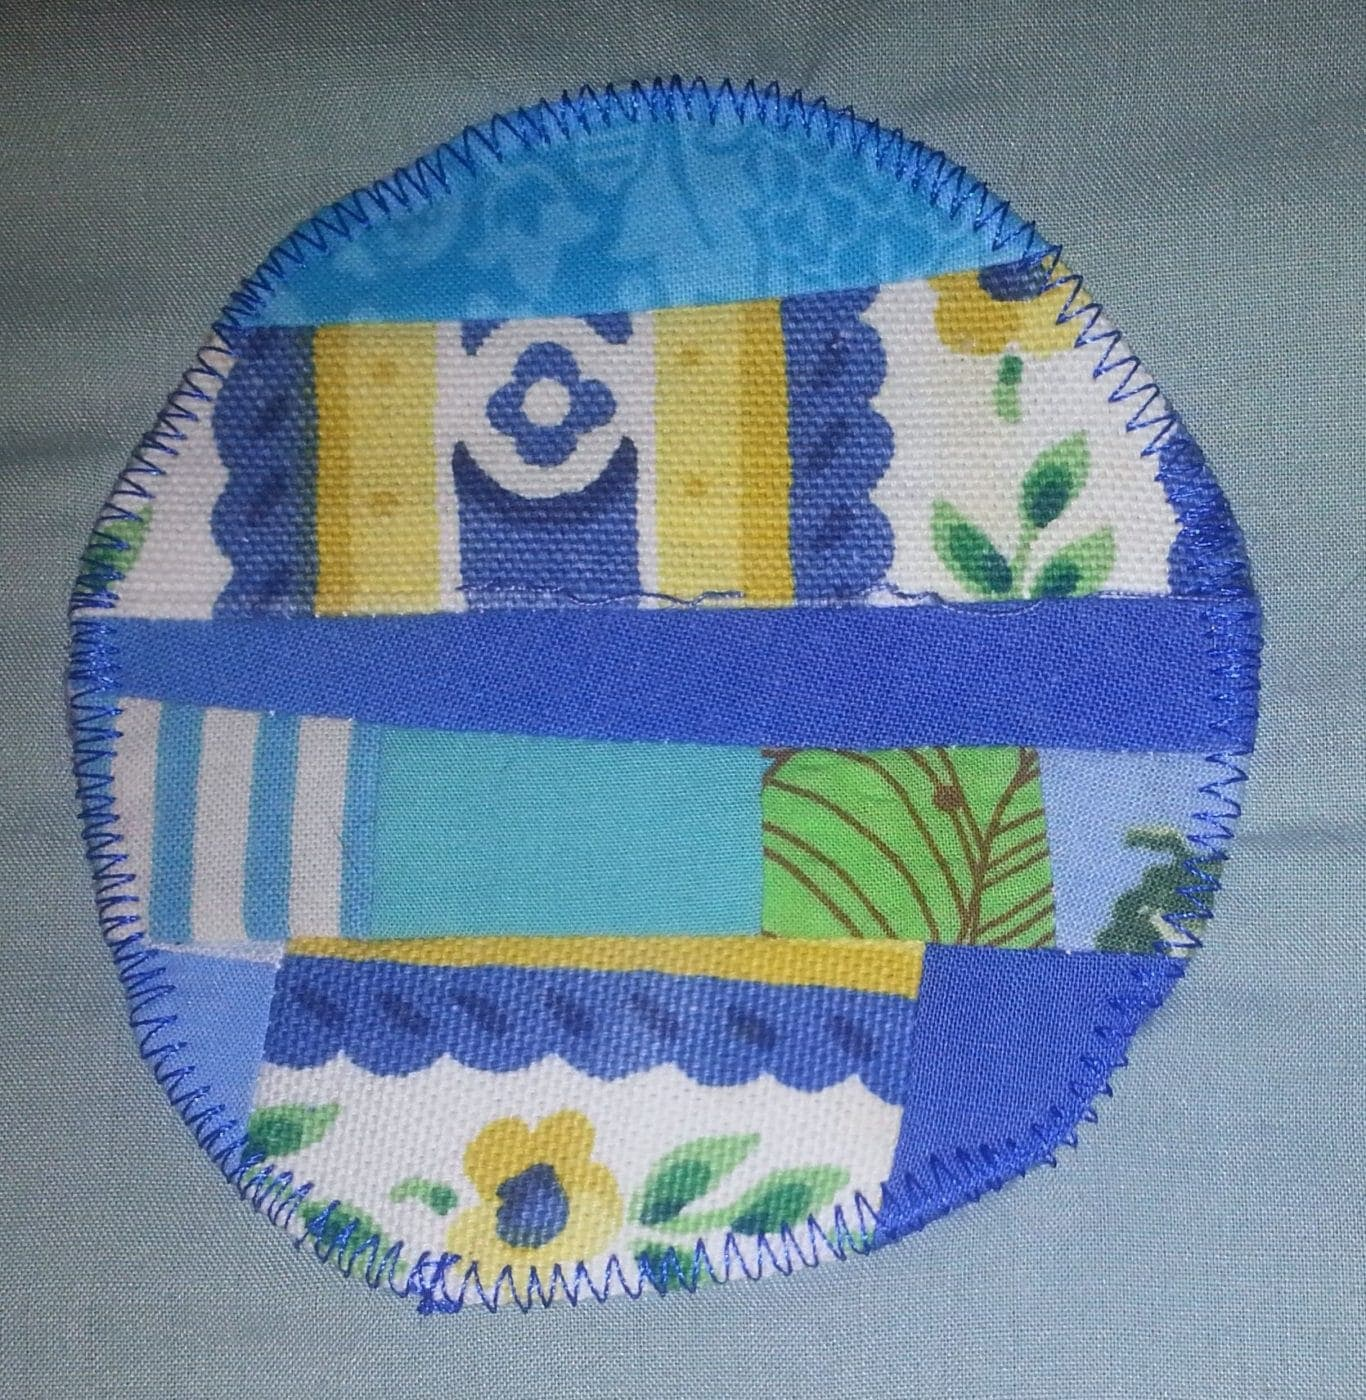 Applique the easy way